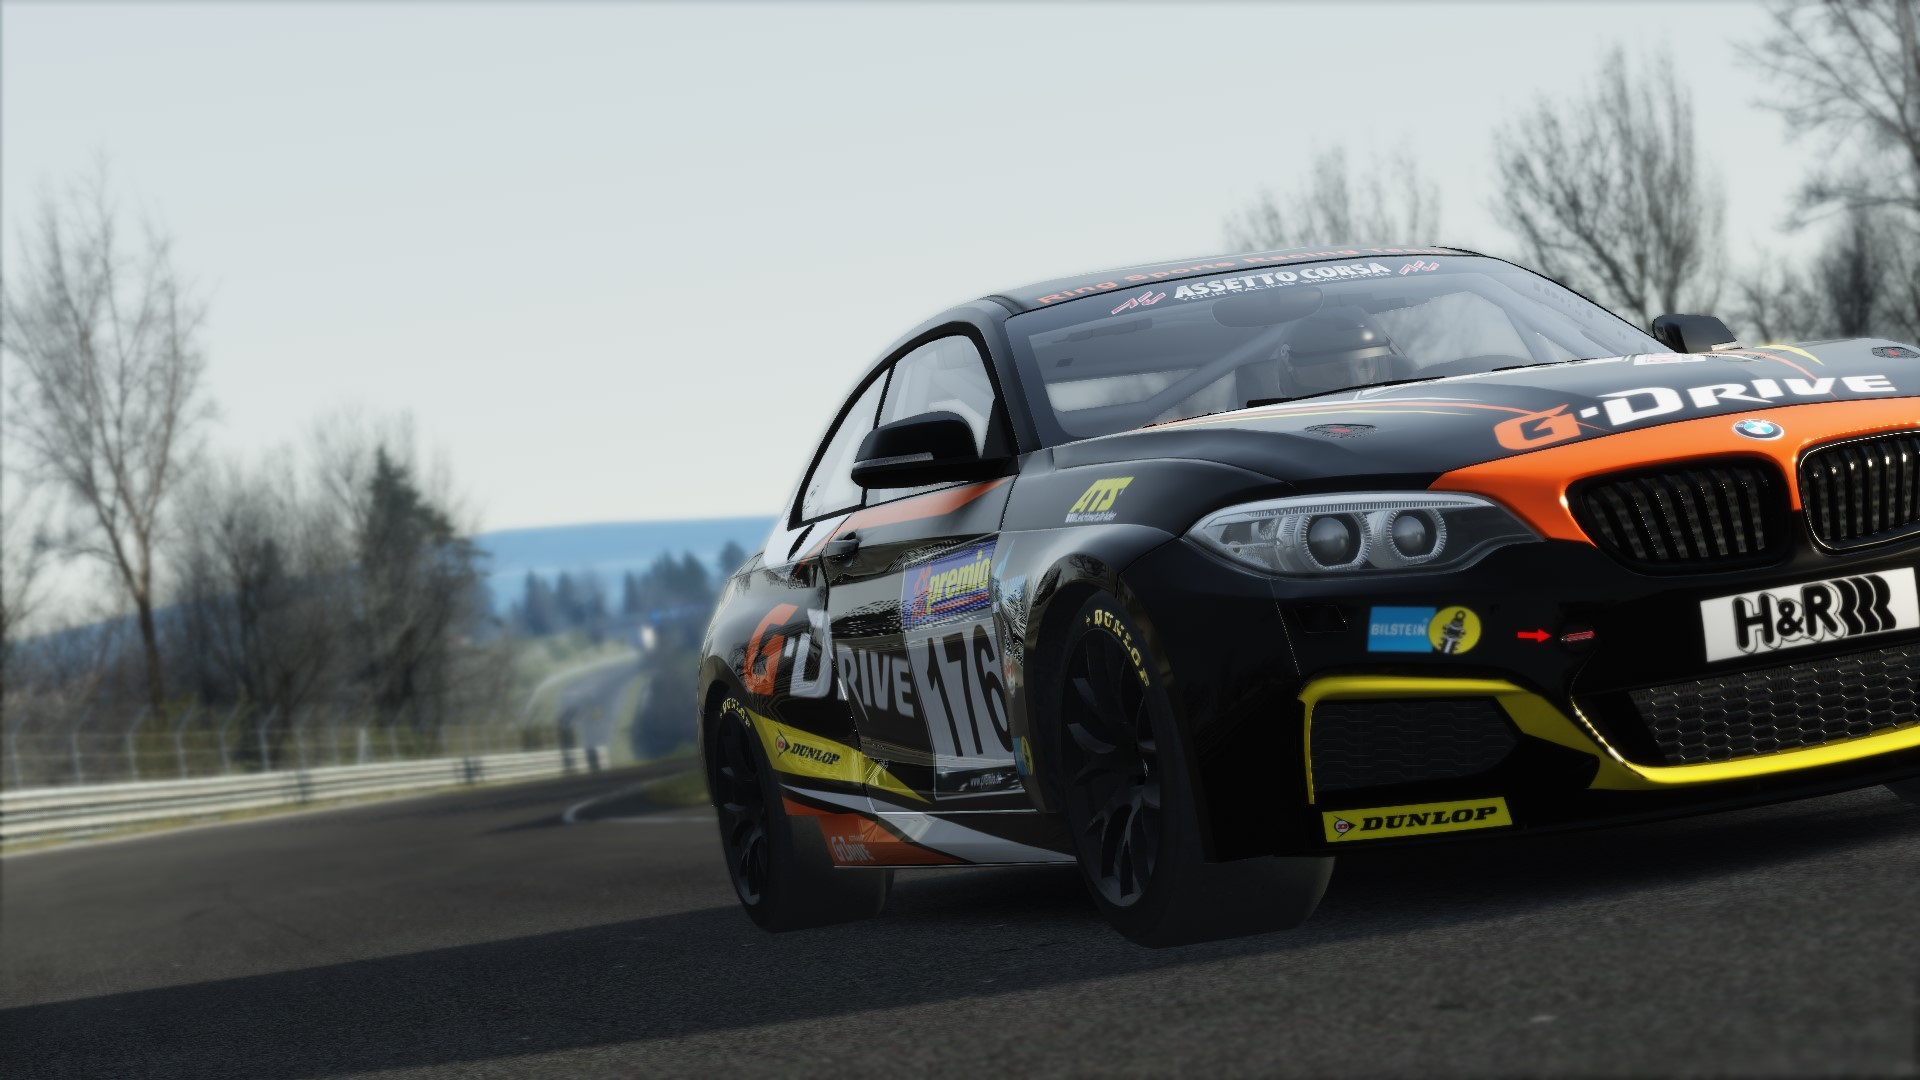 Screenshot_ks_bmw_m235i_racing_ks_nordschleife_10-1-118-4-41-11.jpg